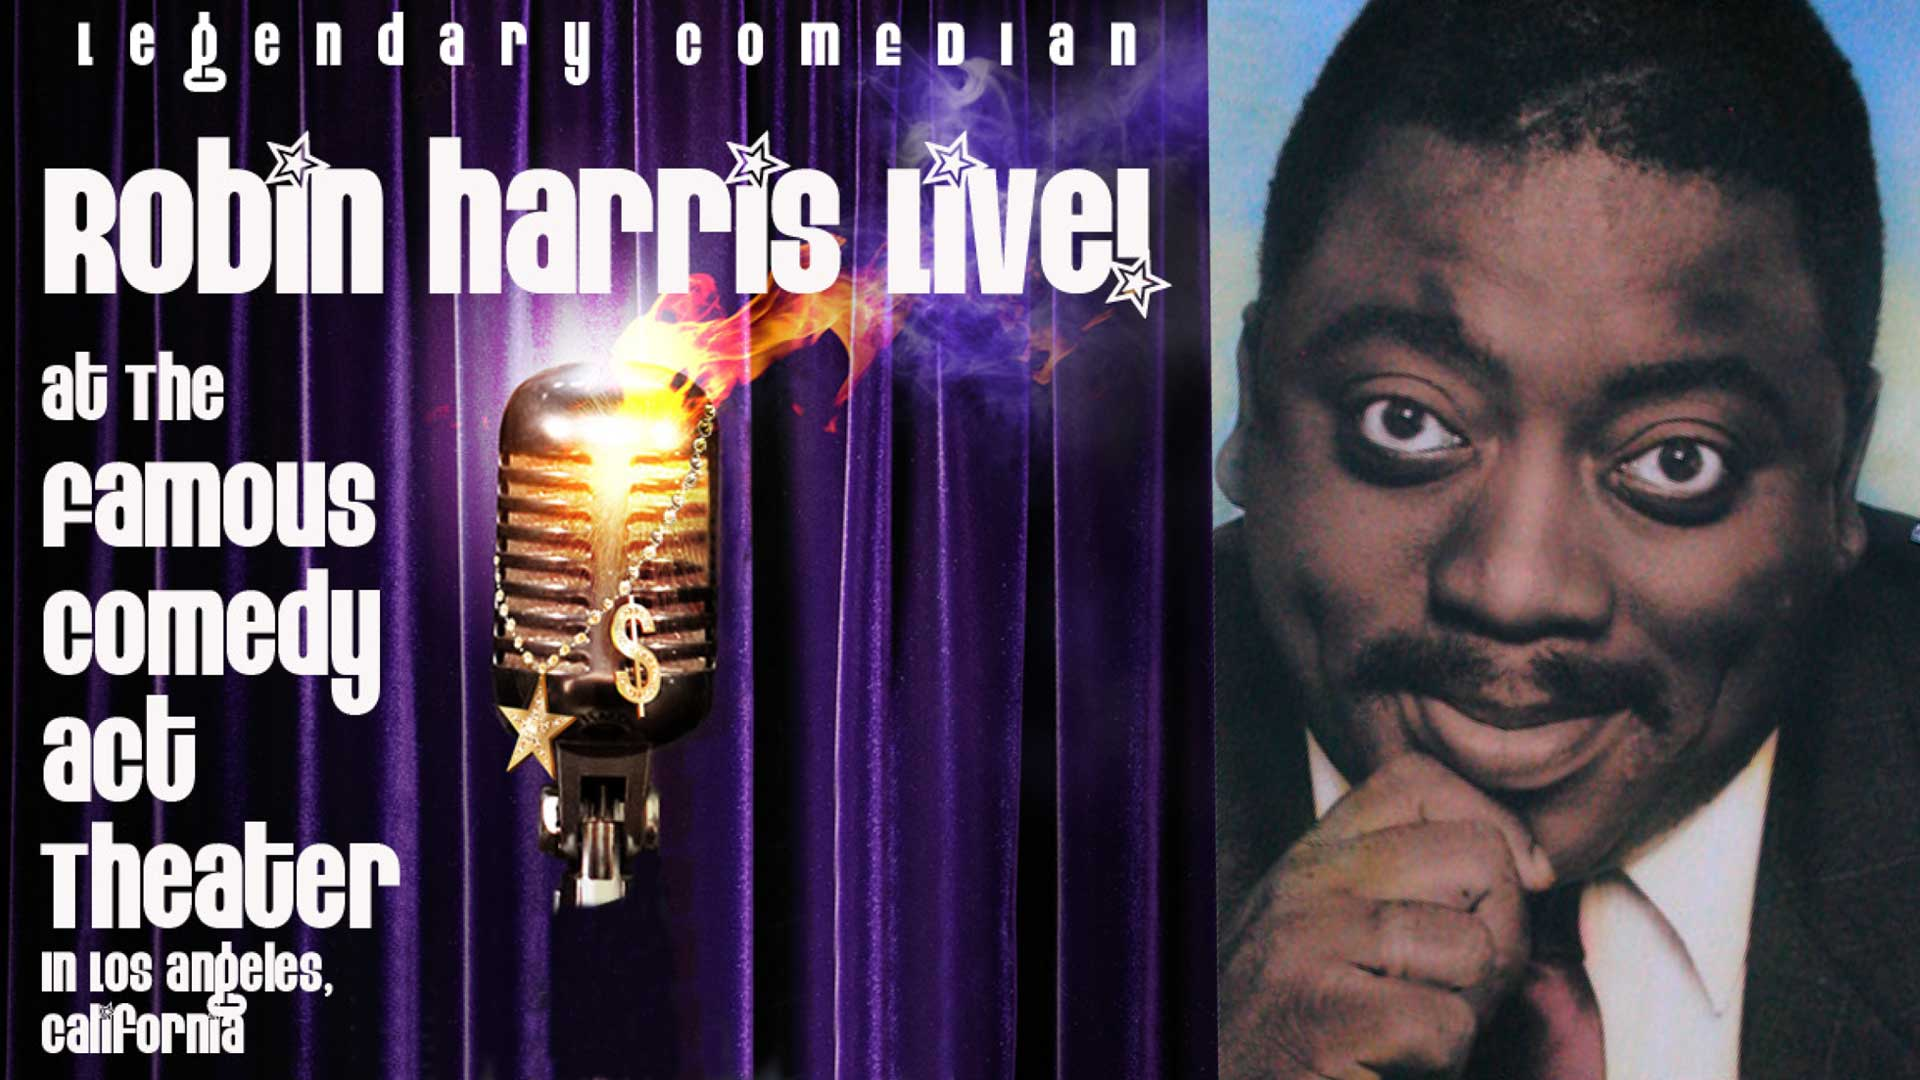 Robin Harris Live at The Famous Comedy Act Theater-The Lost Tapes